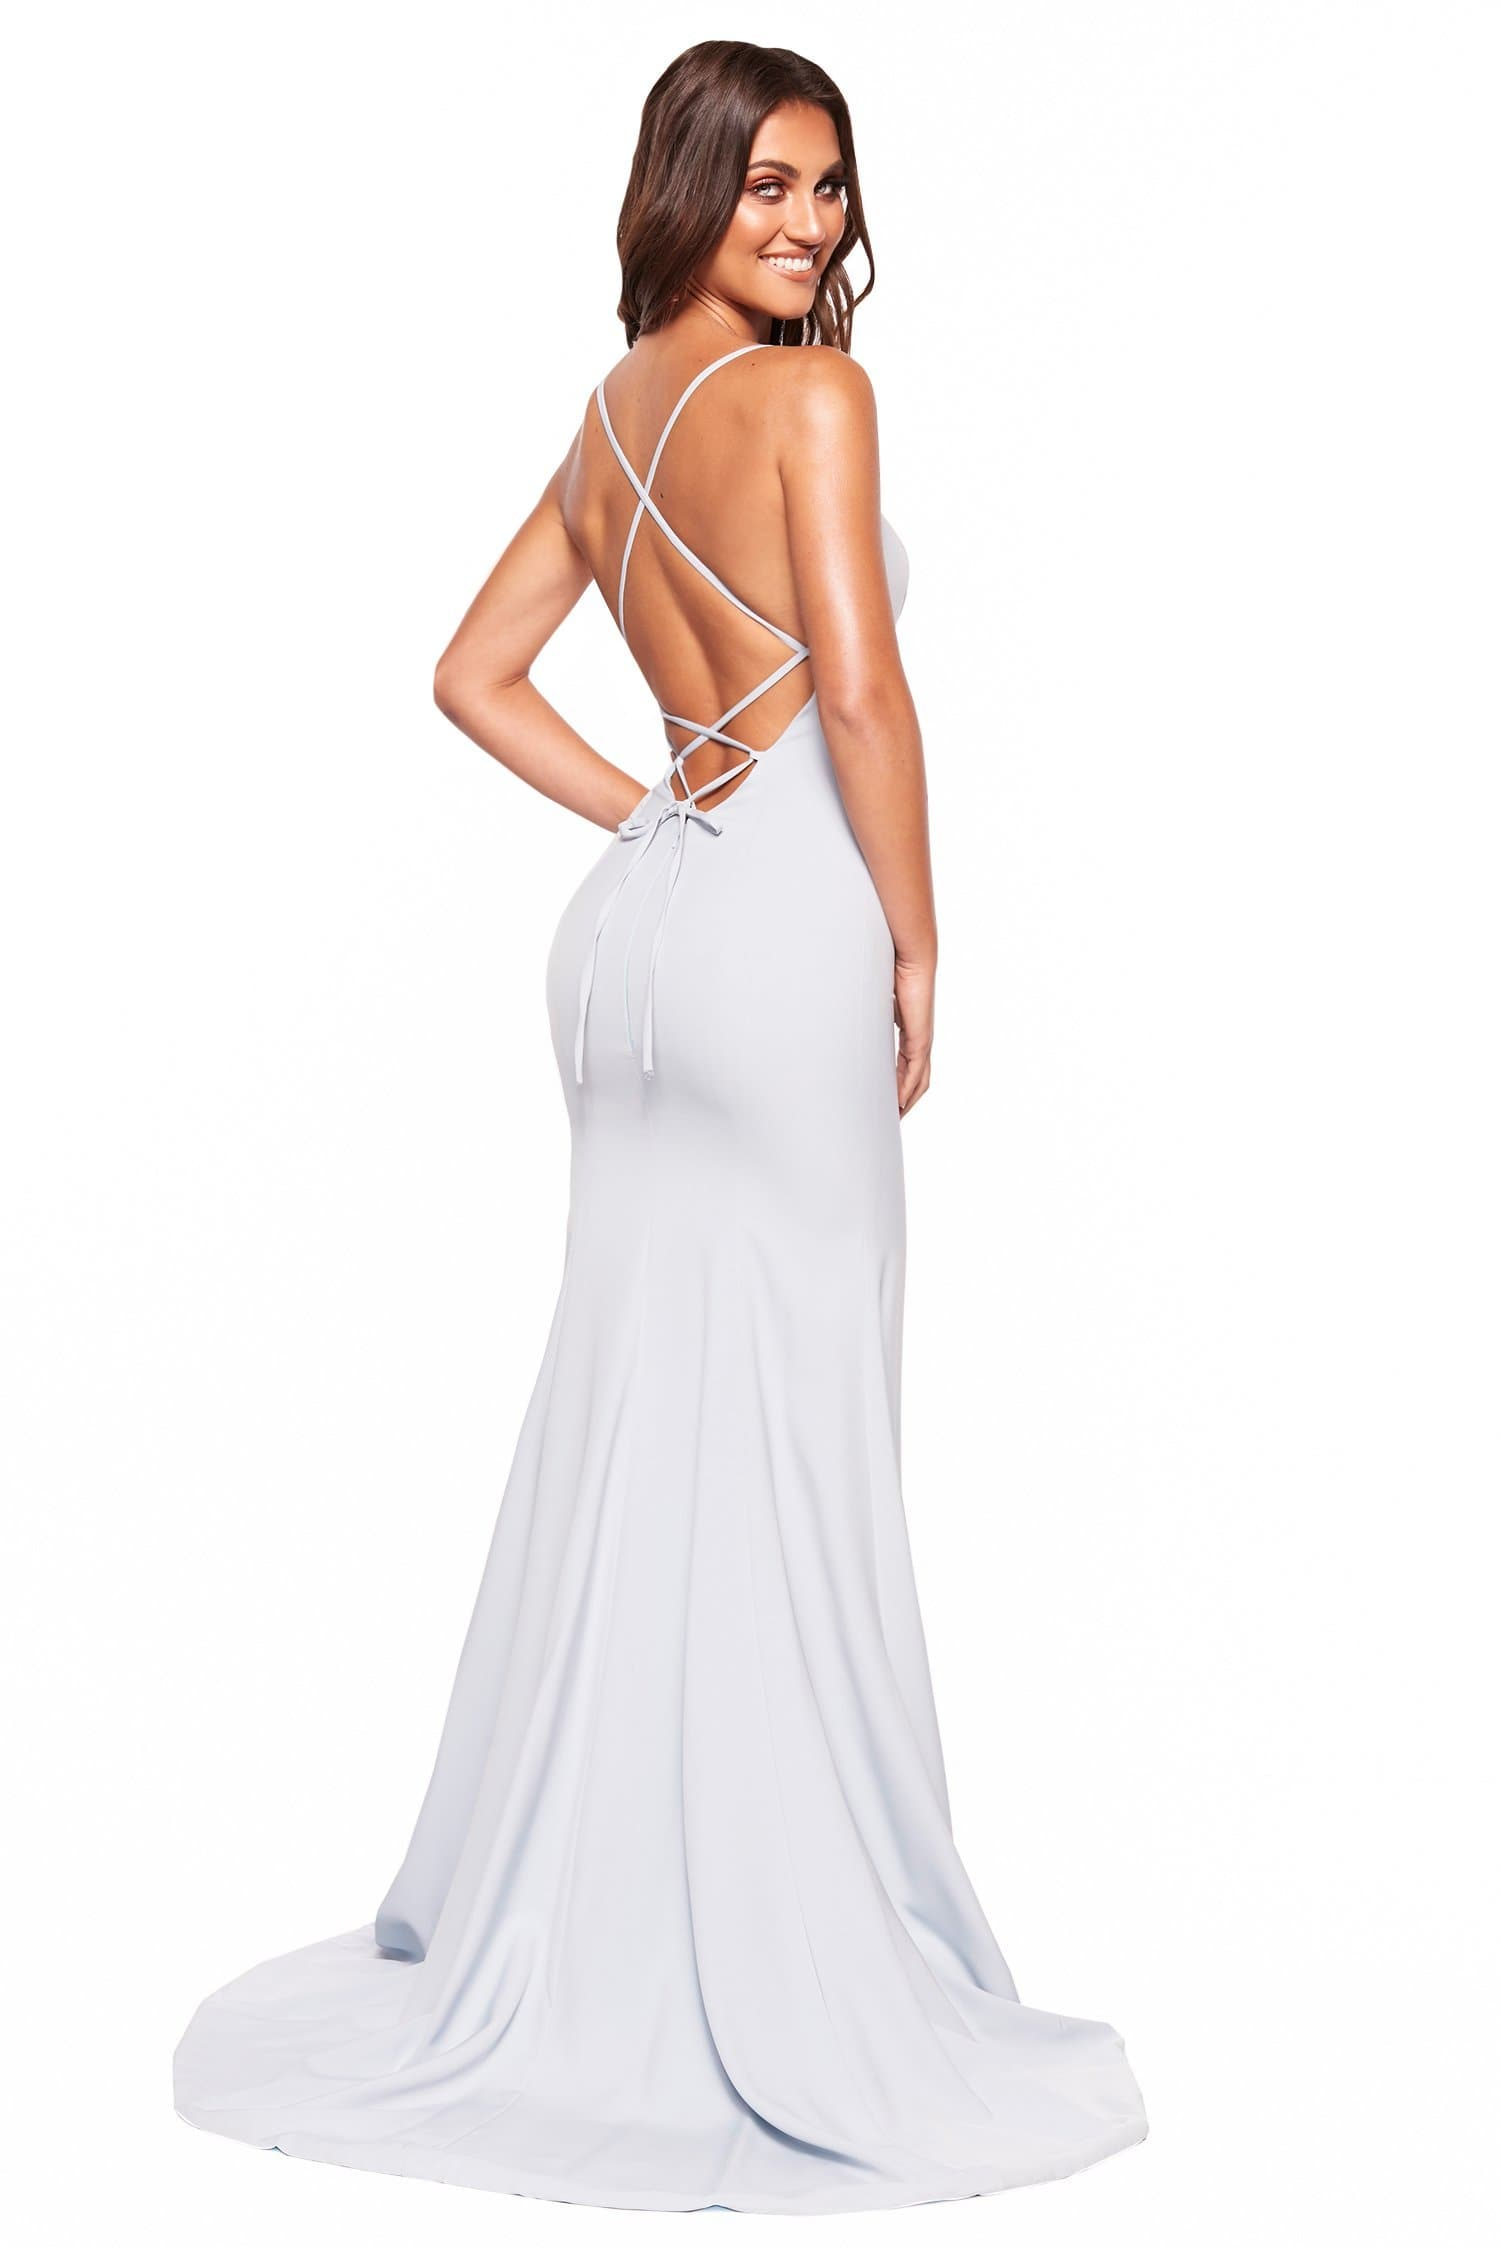 A&N Luxe Amira - Sky Blue Gown with Straight Neckline & Lace-Up Back